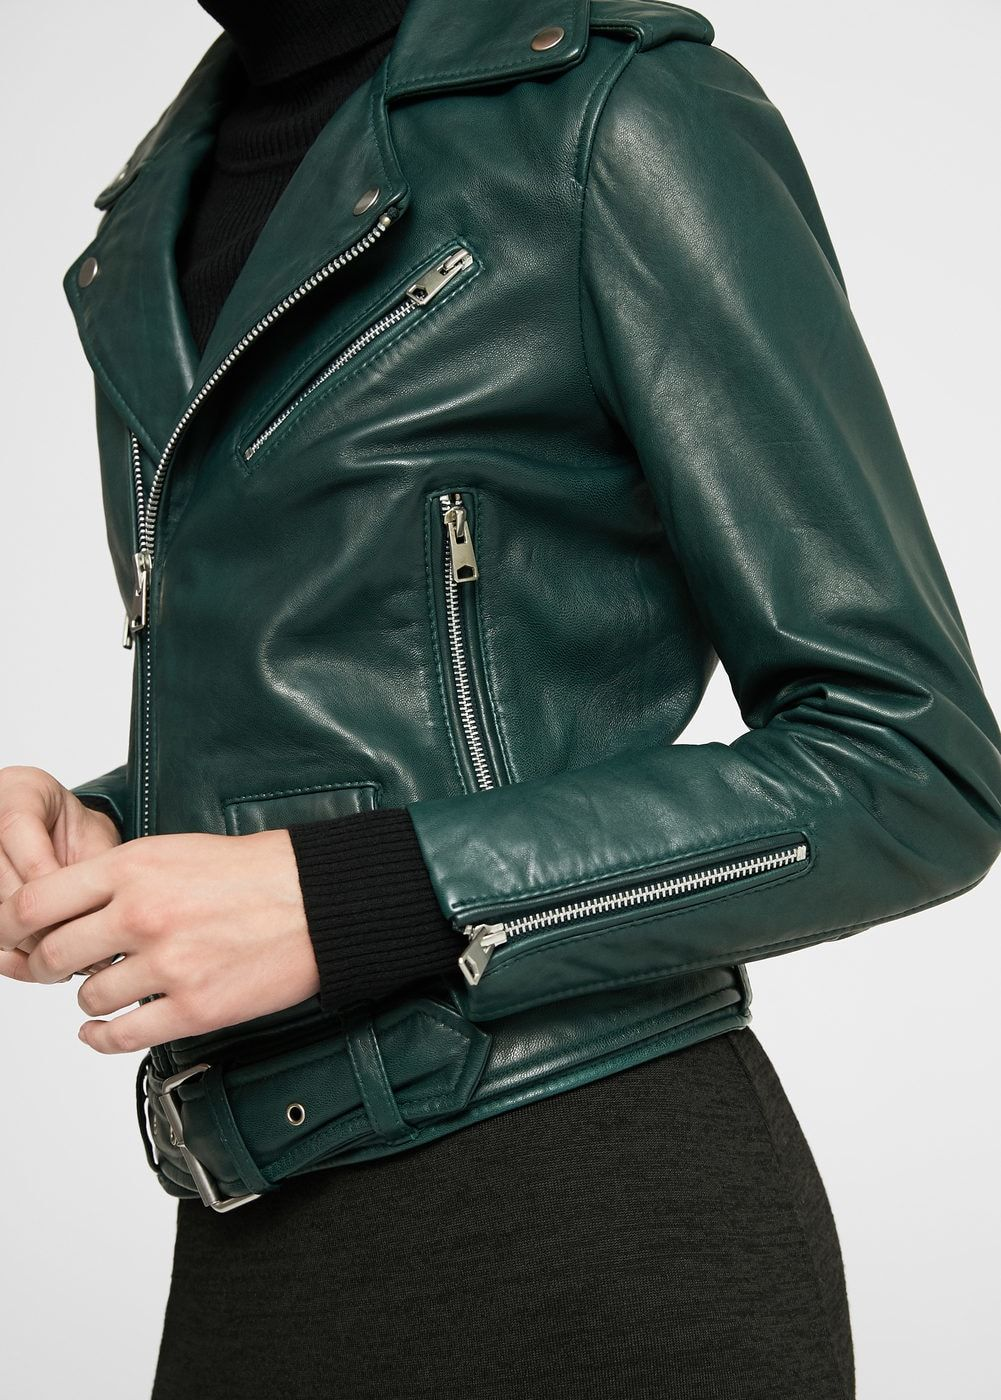 Leather biker jacket Women Green leather jackets